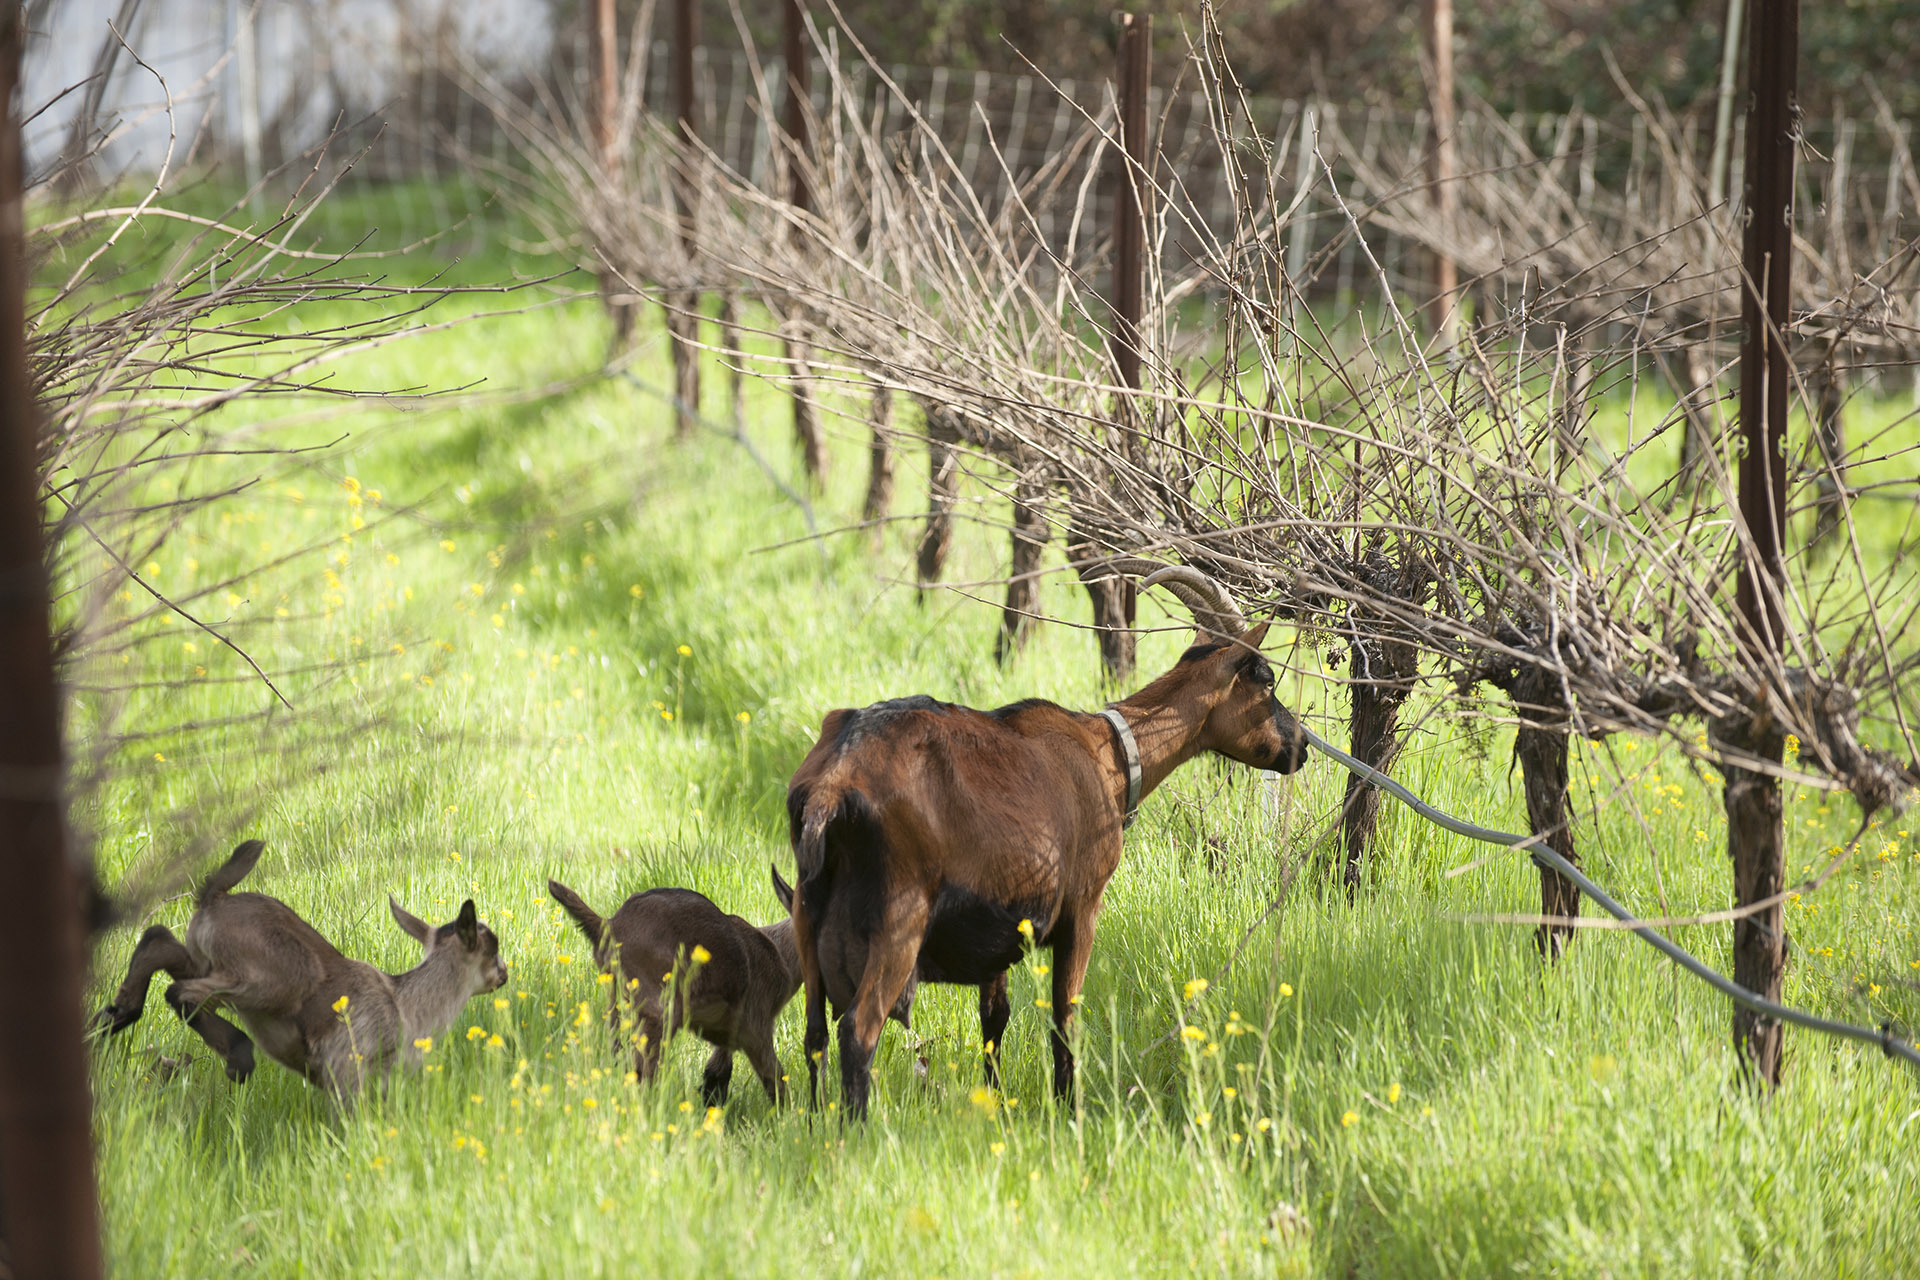 A mama goat with her kids in a barren vineyards / Photo by Nathaniel Frey